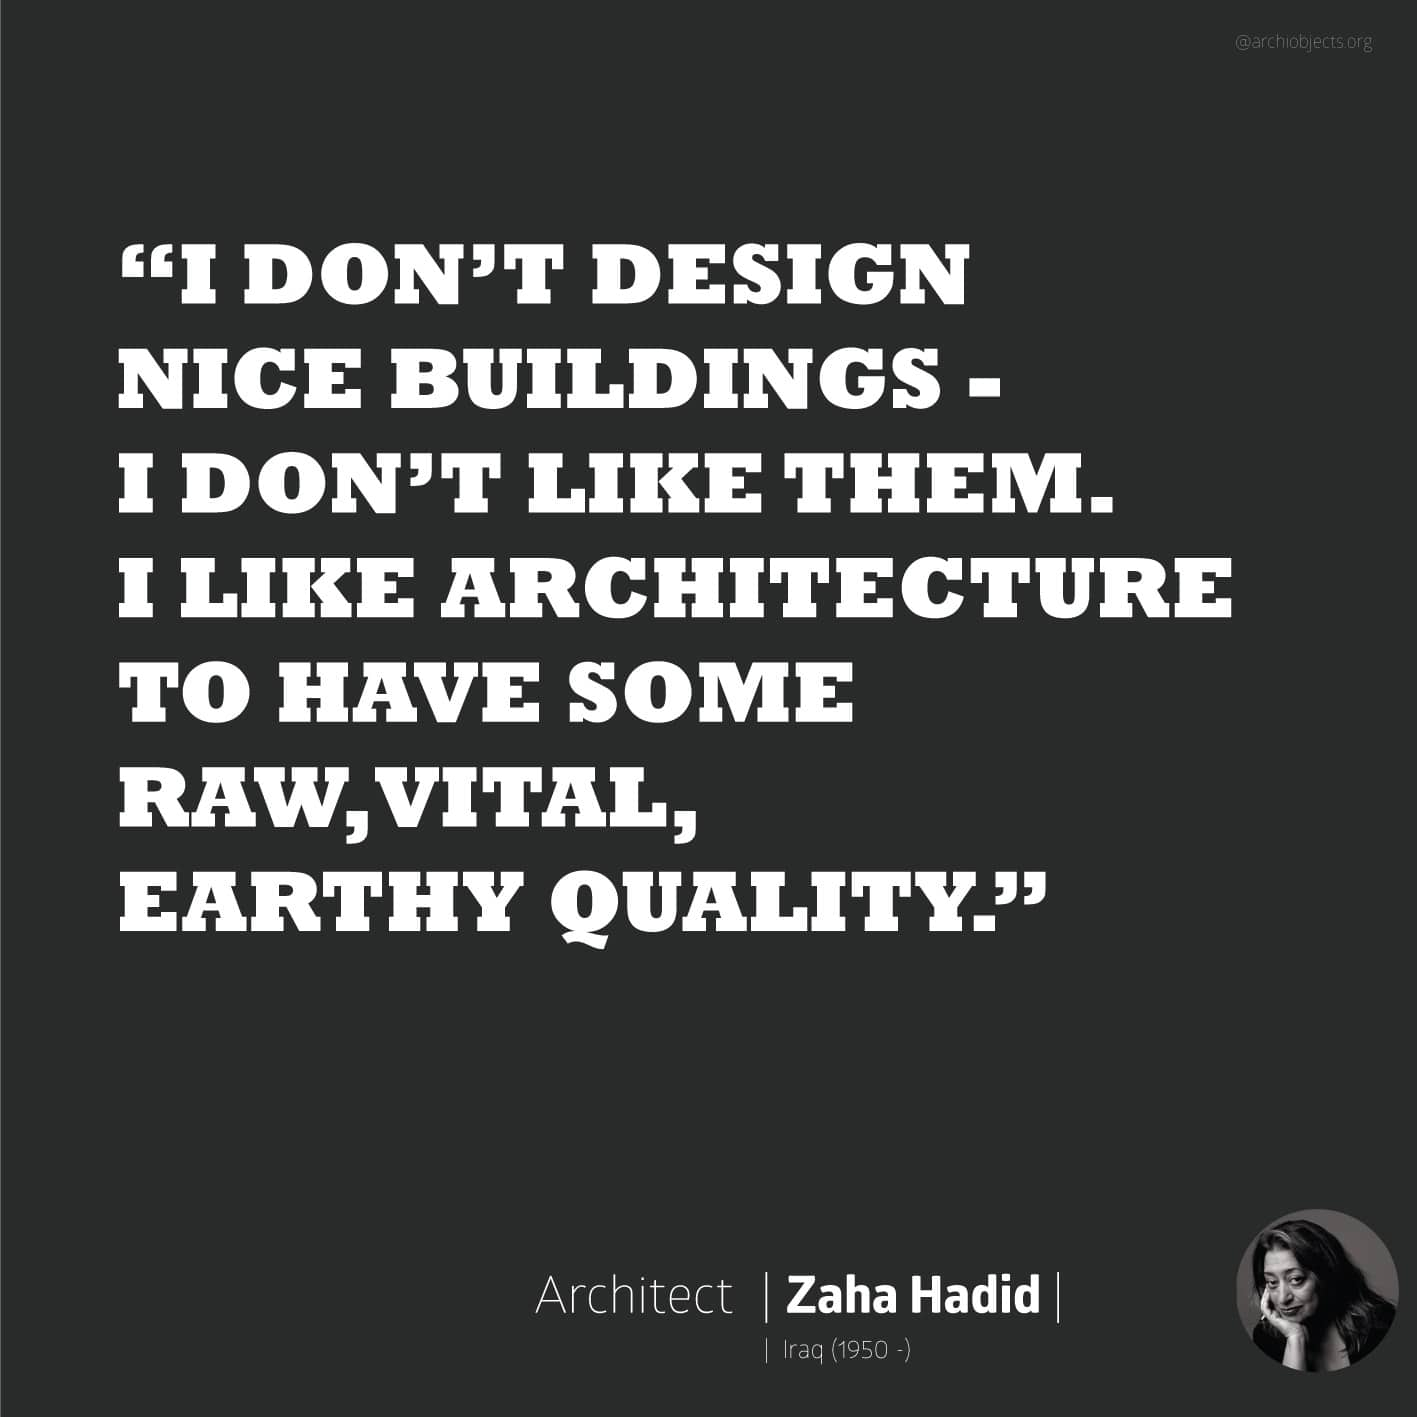 hadid quote Architectural Quotes - Worth spreading Architects' voice